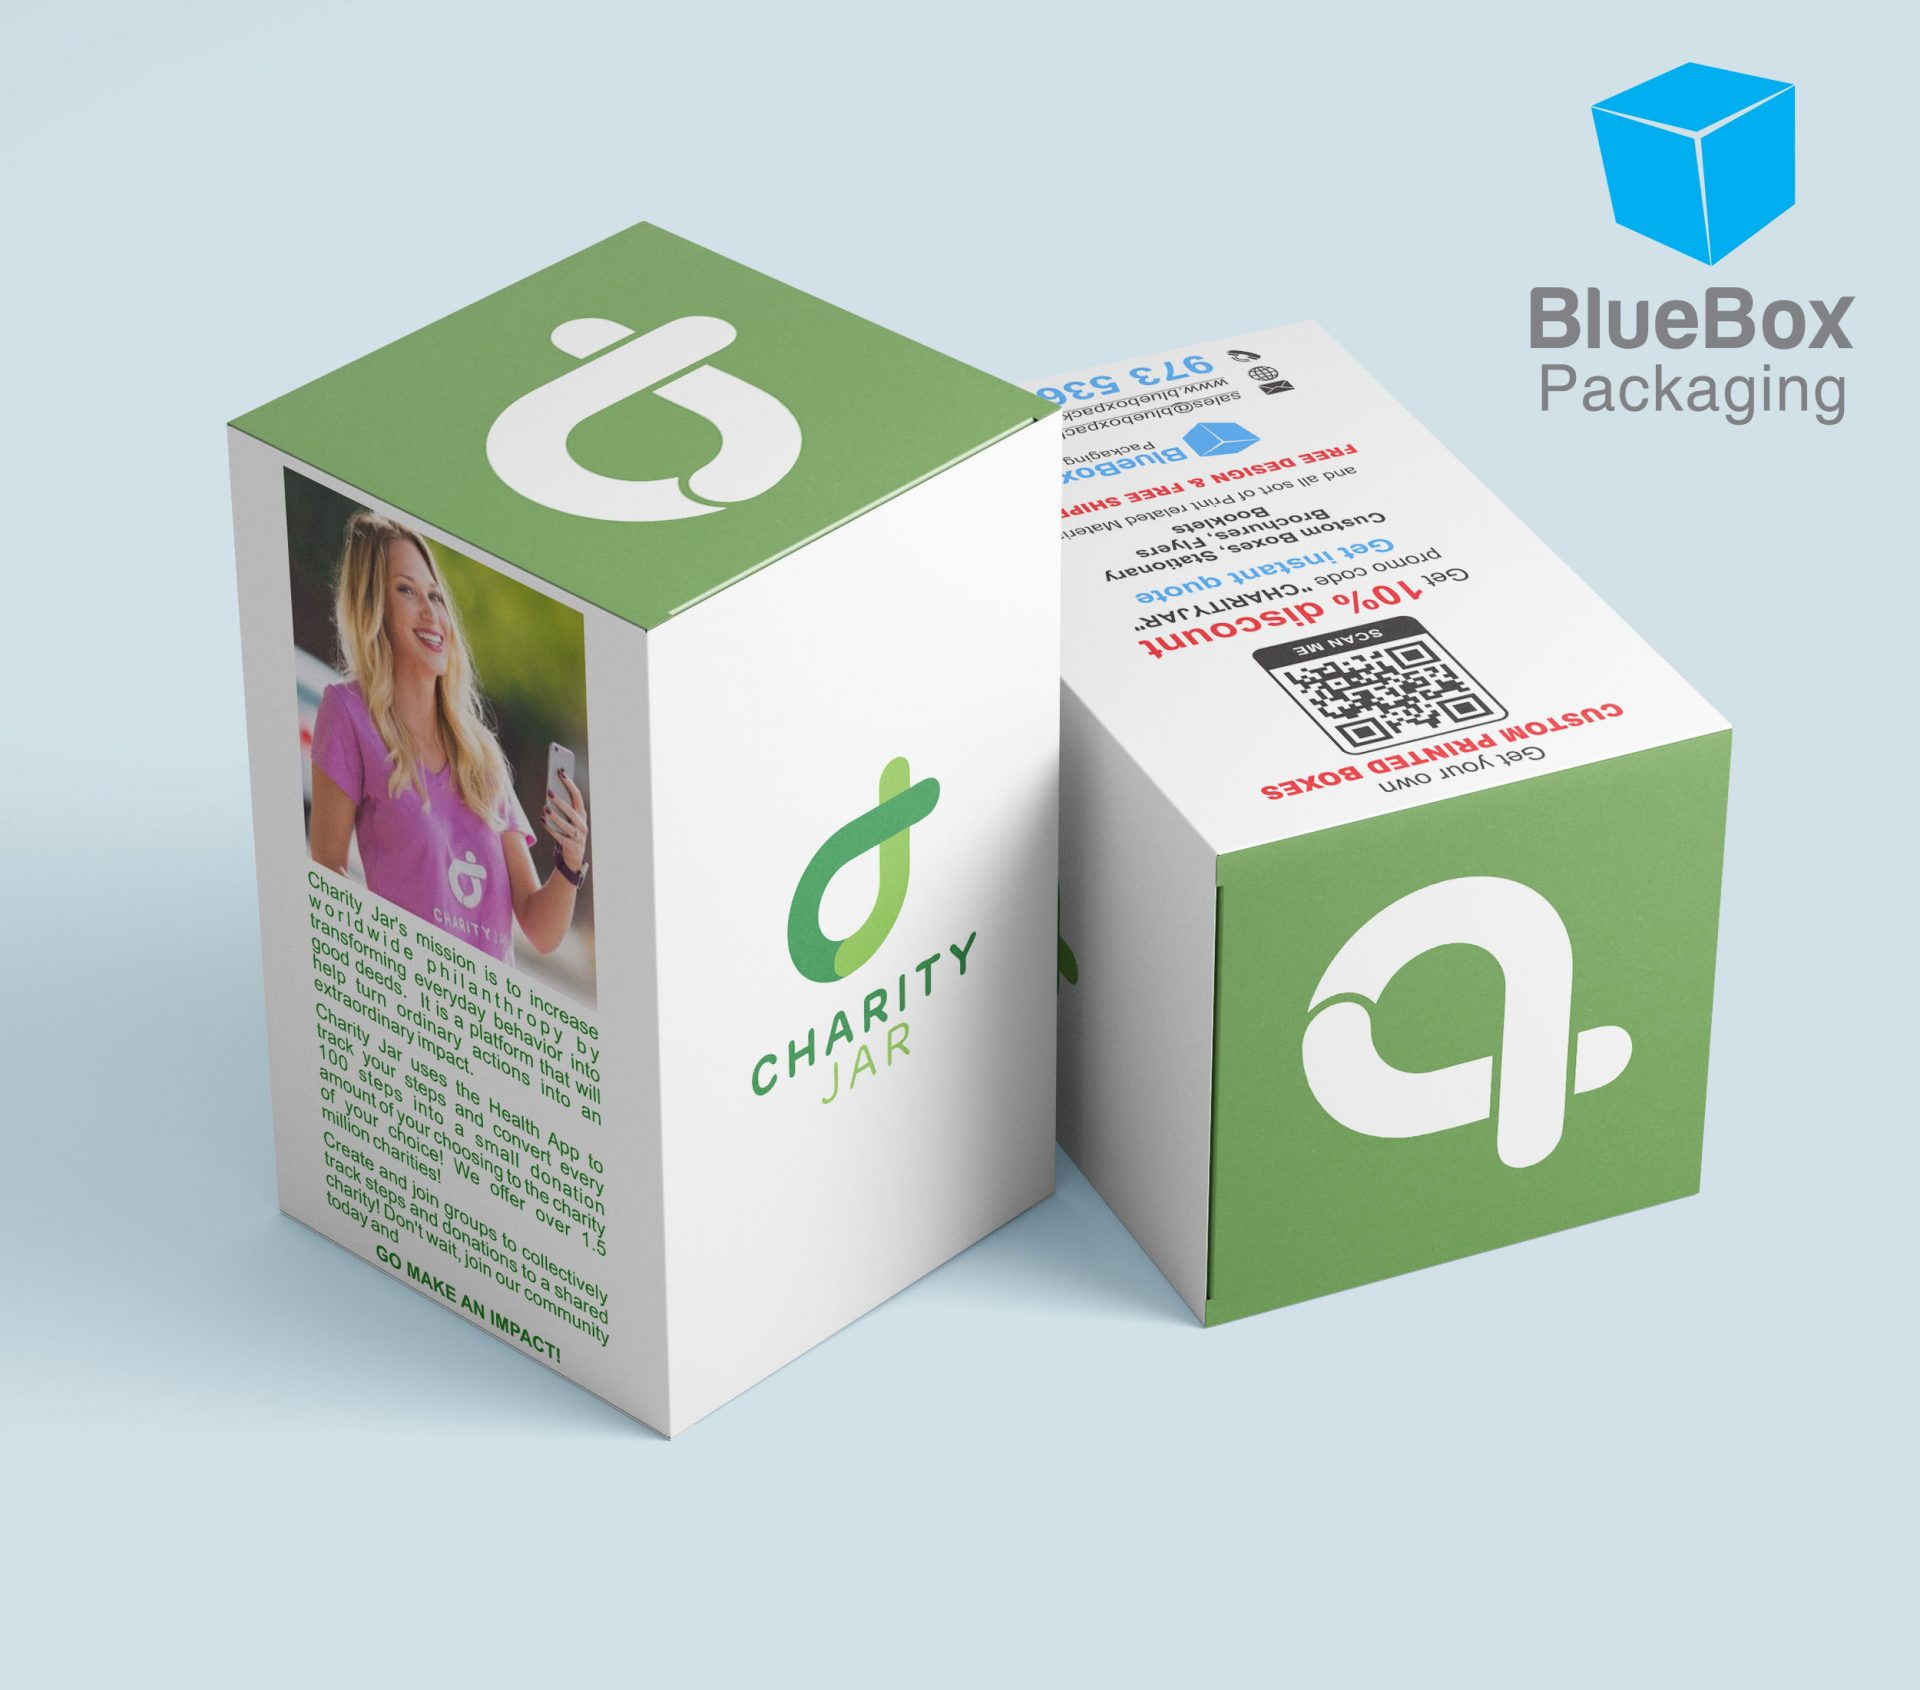 Blue box Packaging_Charityjar_MockUp_02